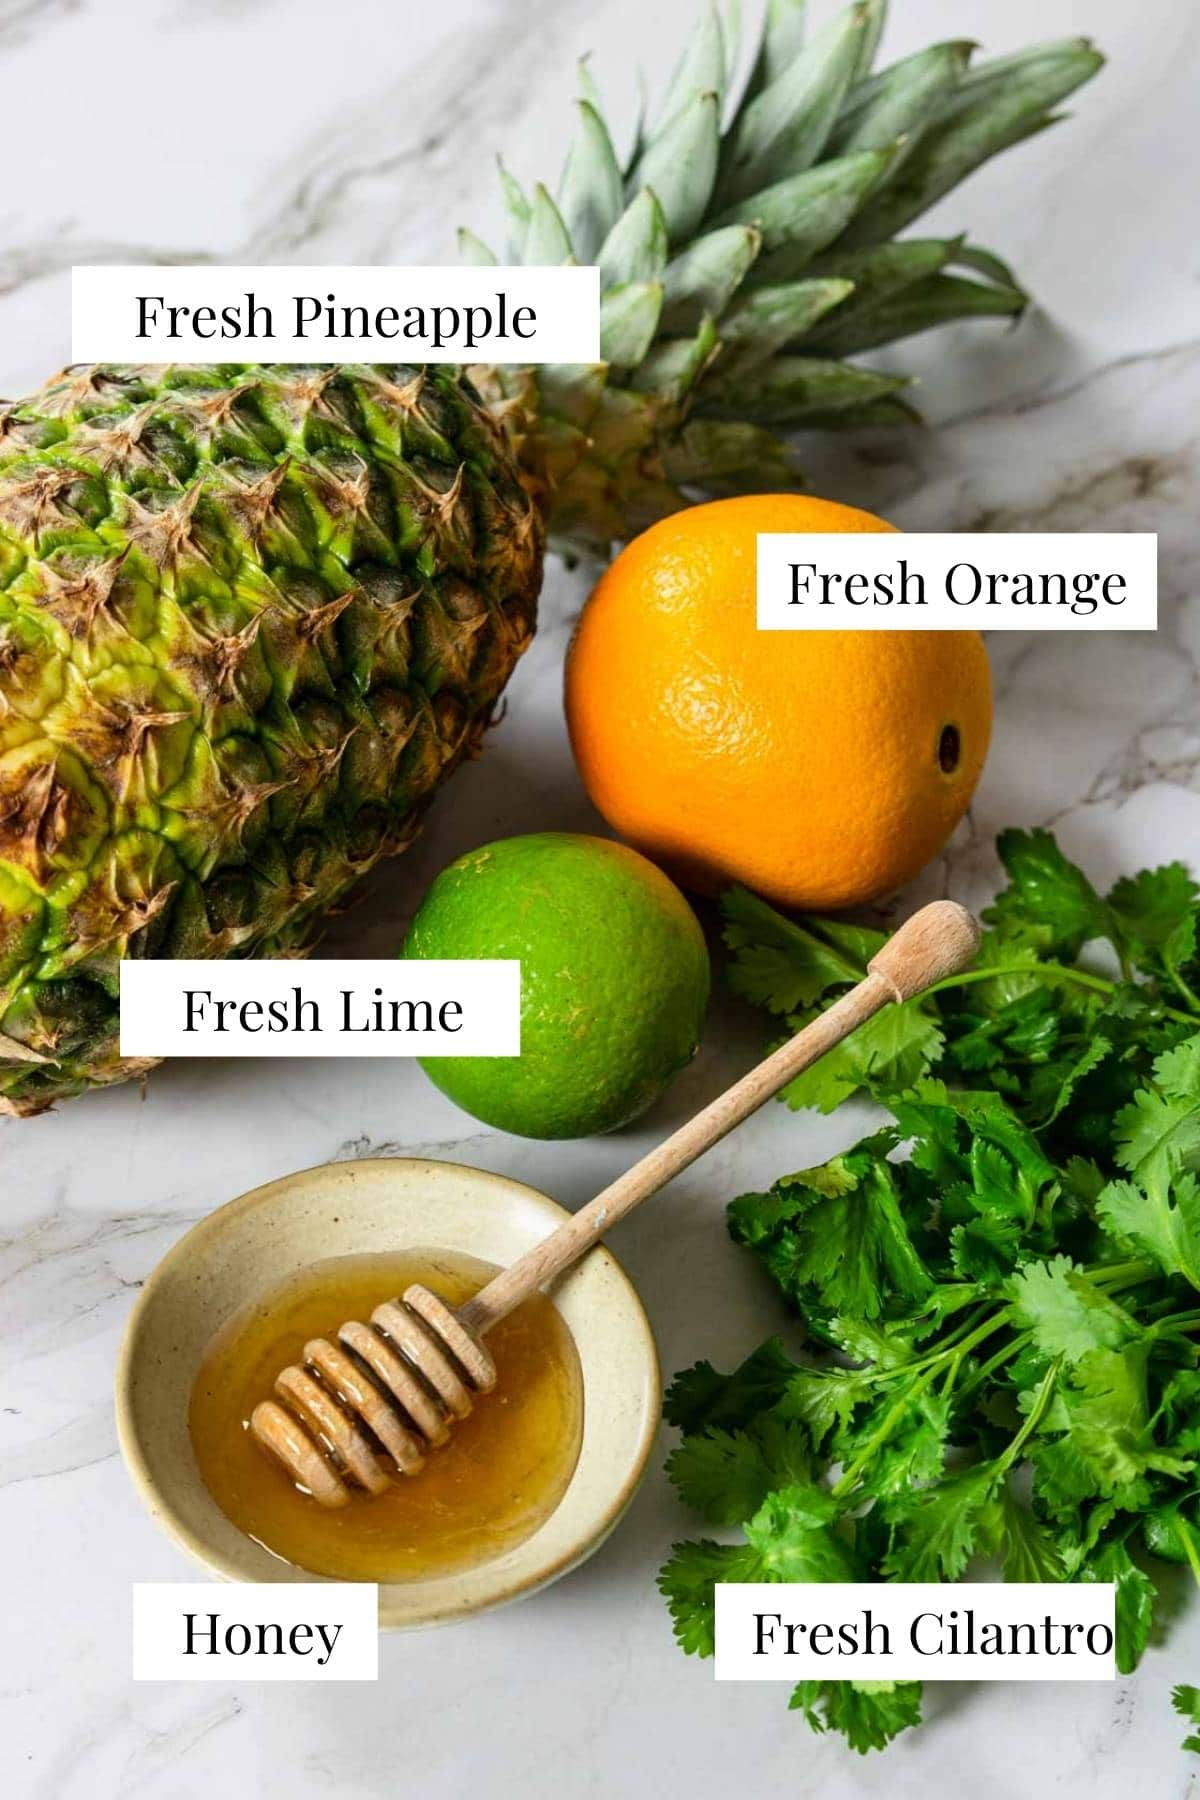 pineapple, orange, lime, honey and cilantro on a table